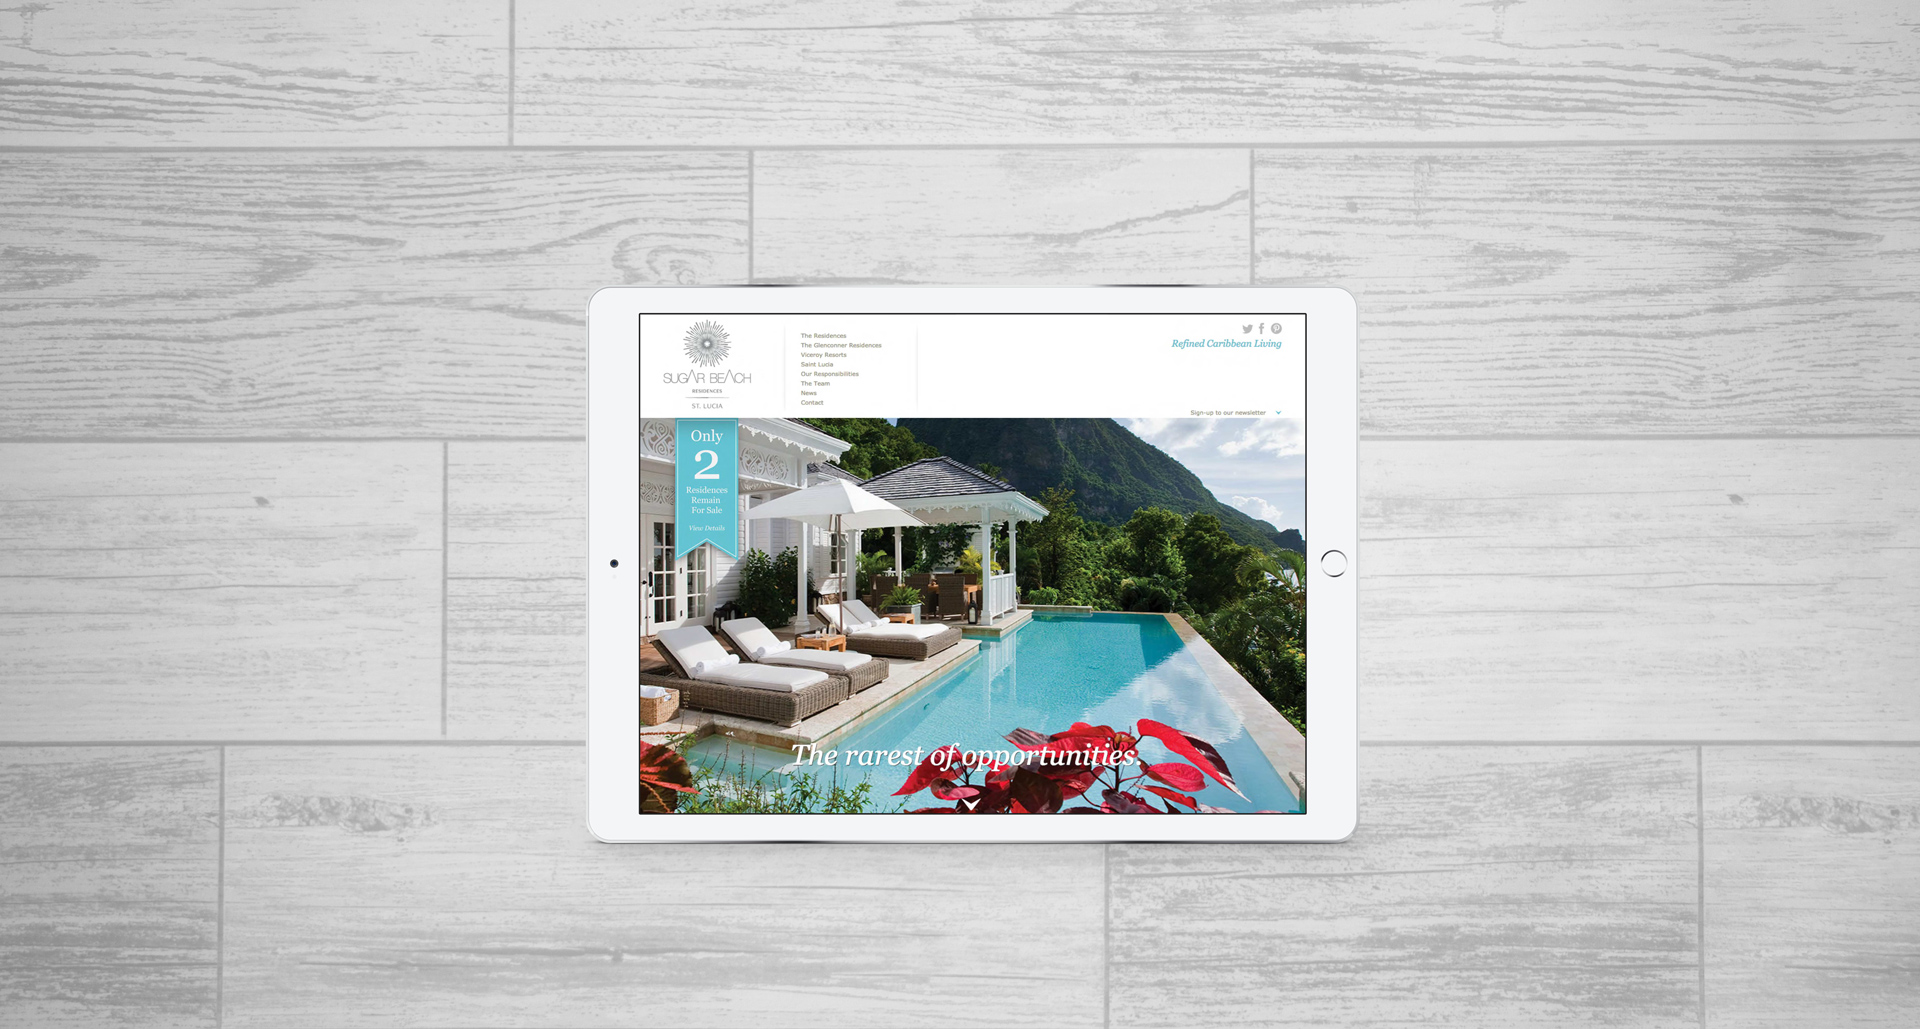 Luxury resort marketing | Sugar Beach Residences | Responsive Website Viewed on an iPad